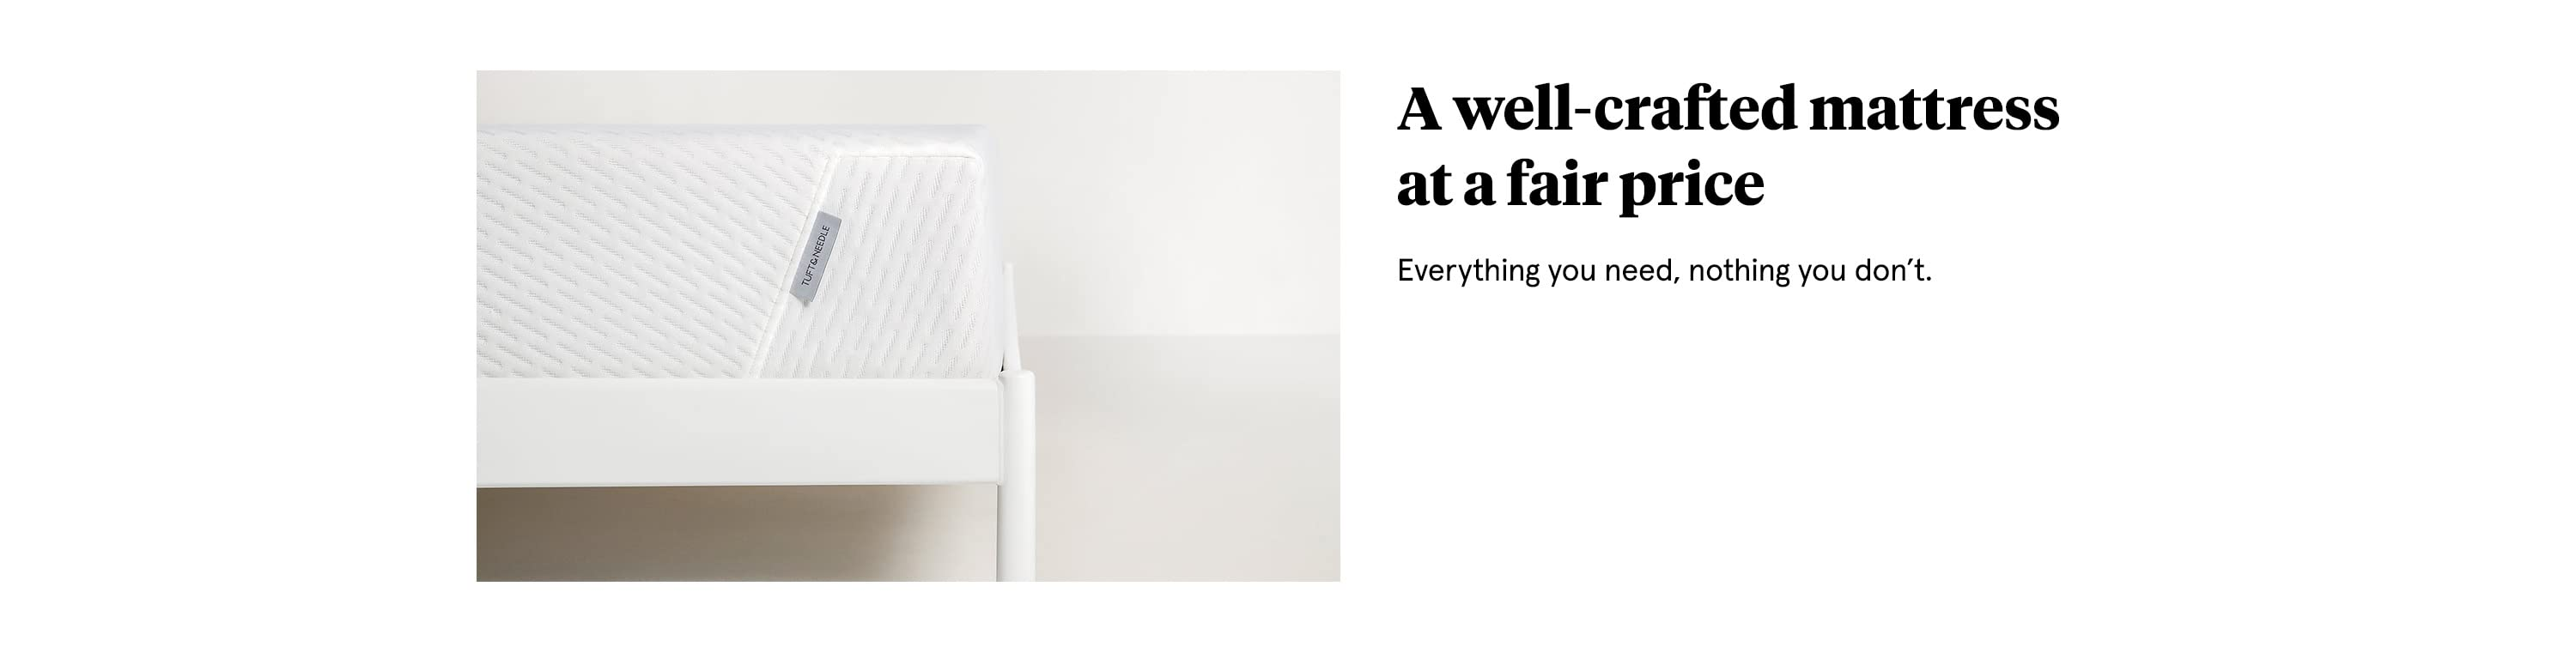 A well-crafted mattress at a fair price